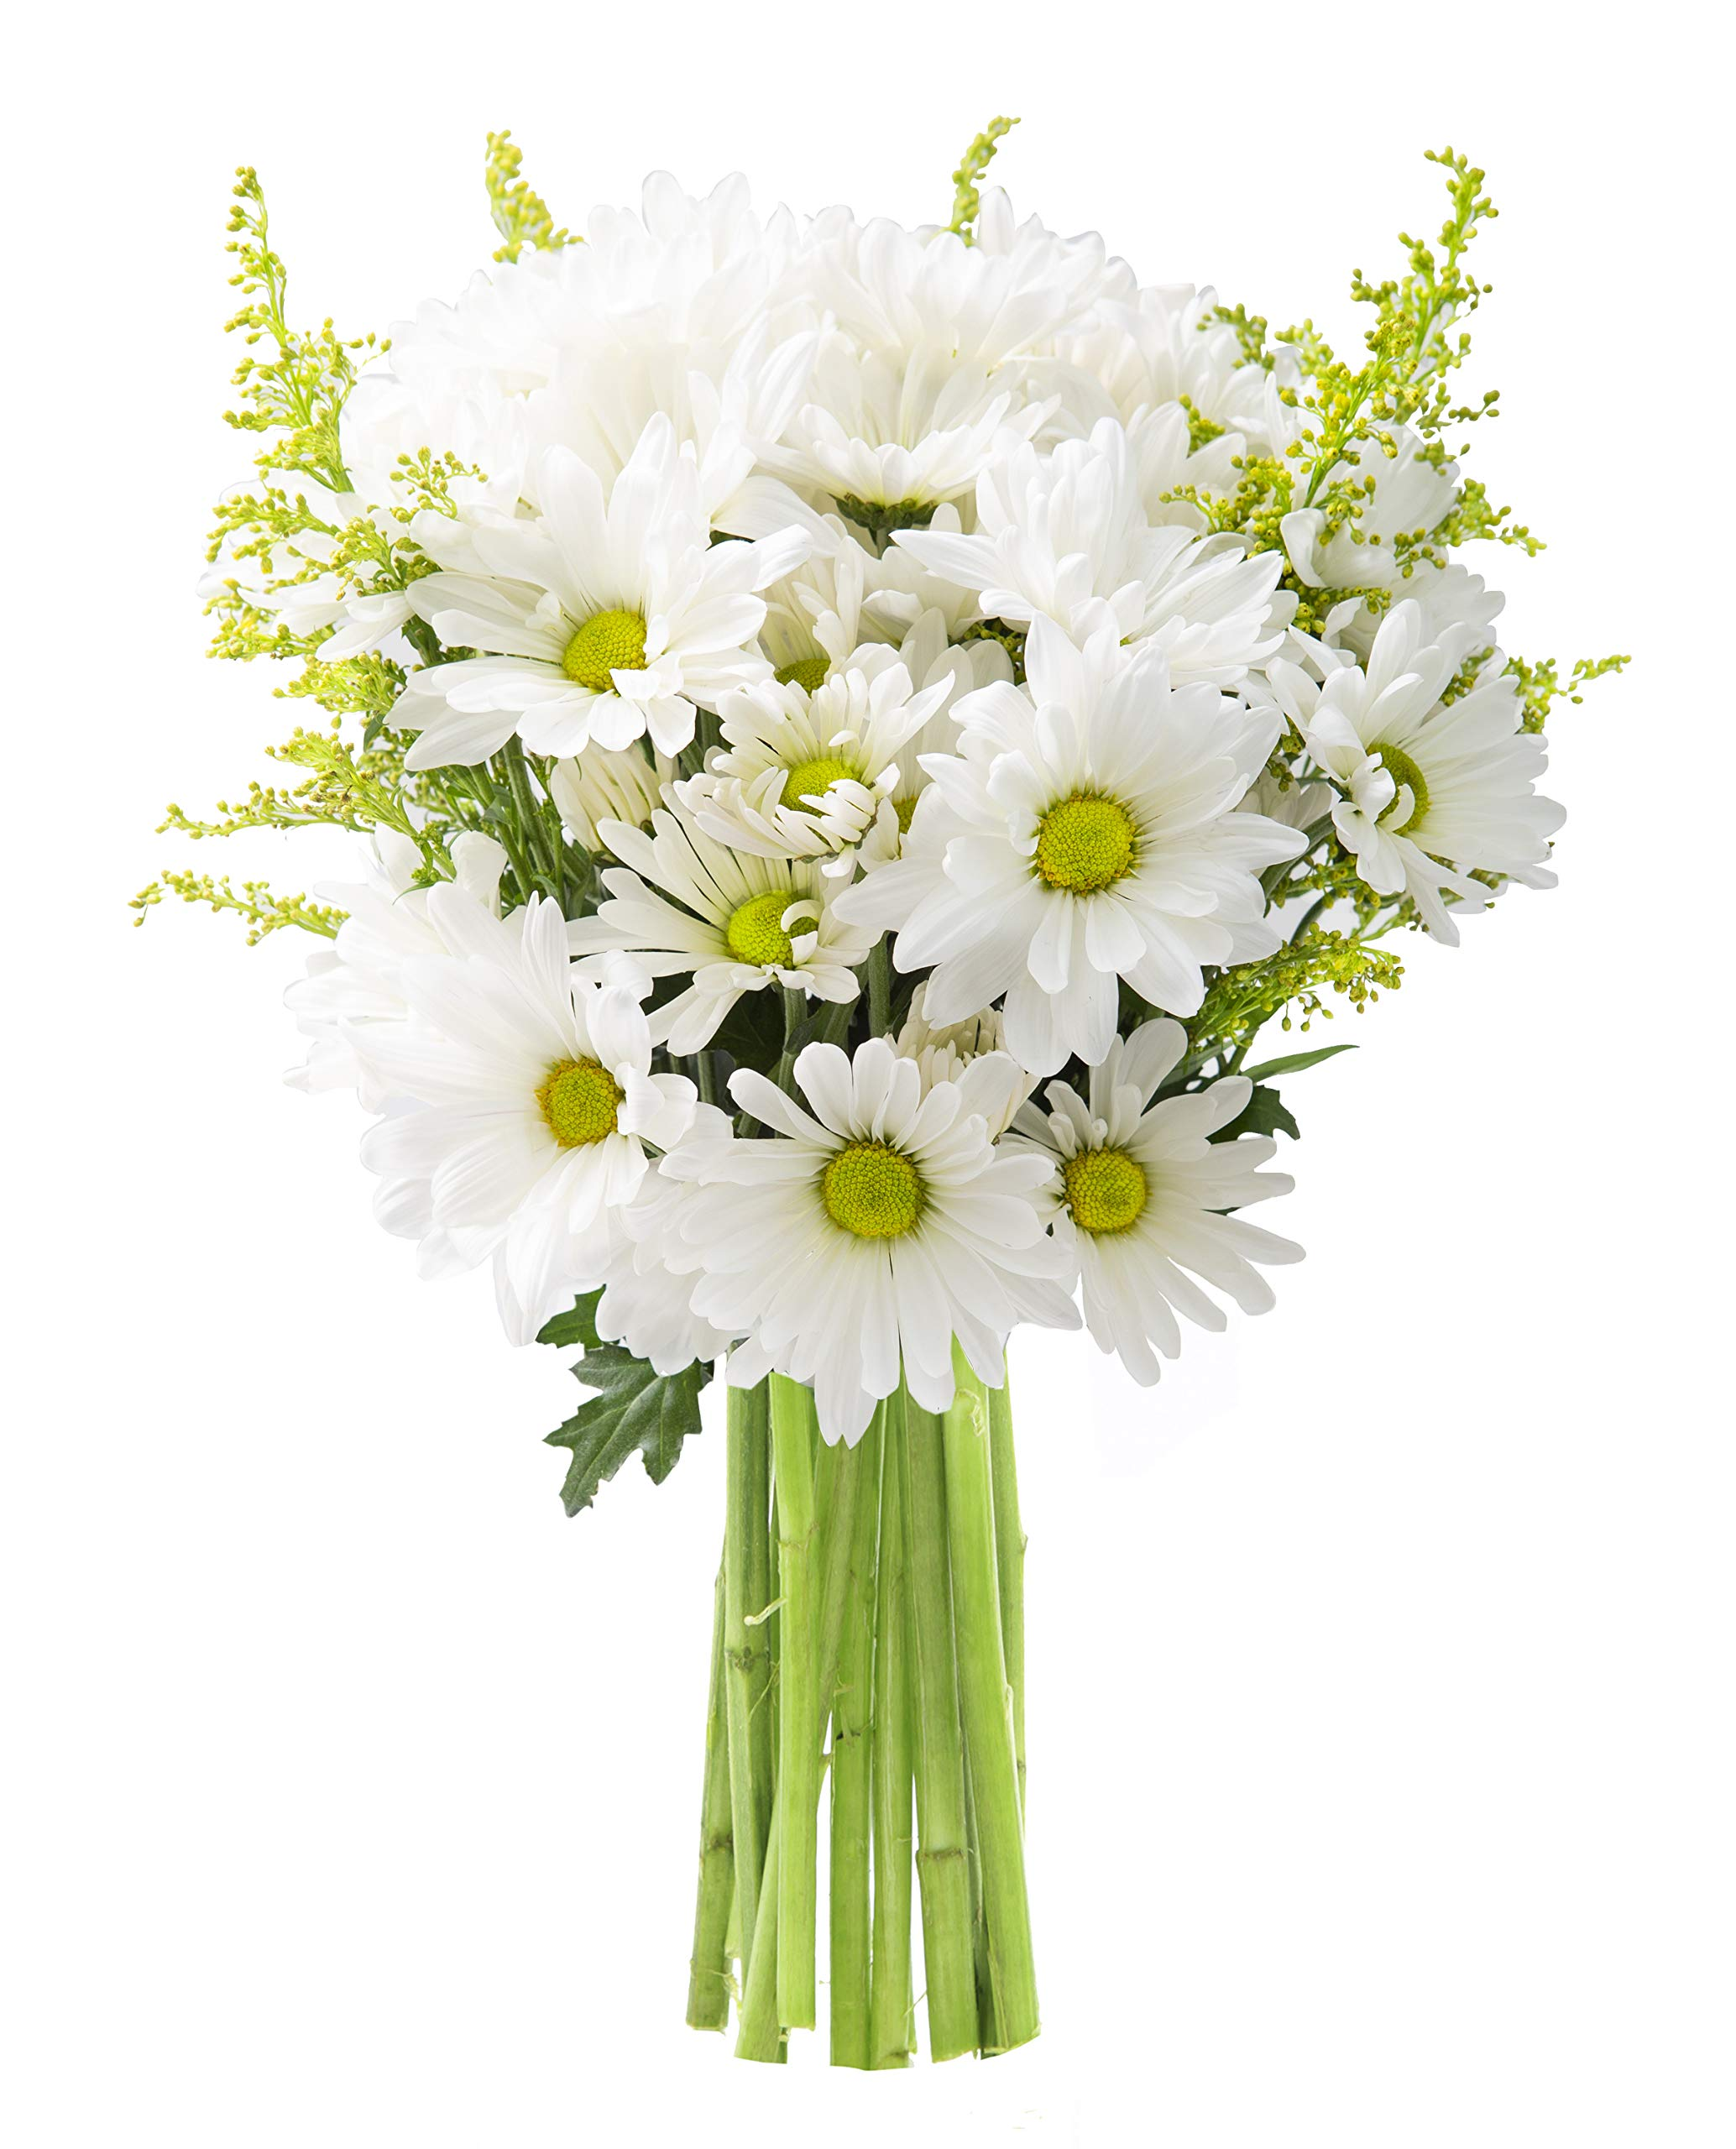 KaBloom Bountiful Beauty Bouquet of Fresh White Daisies by KaBloom (Image #1)